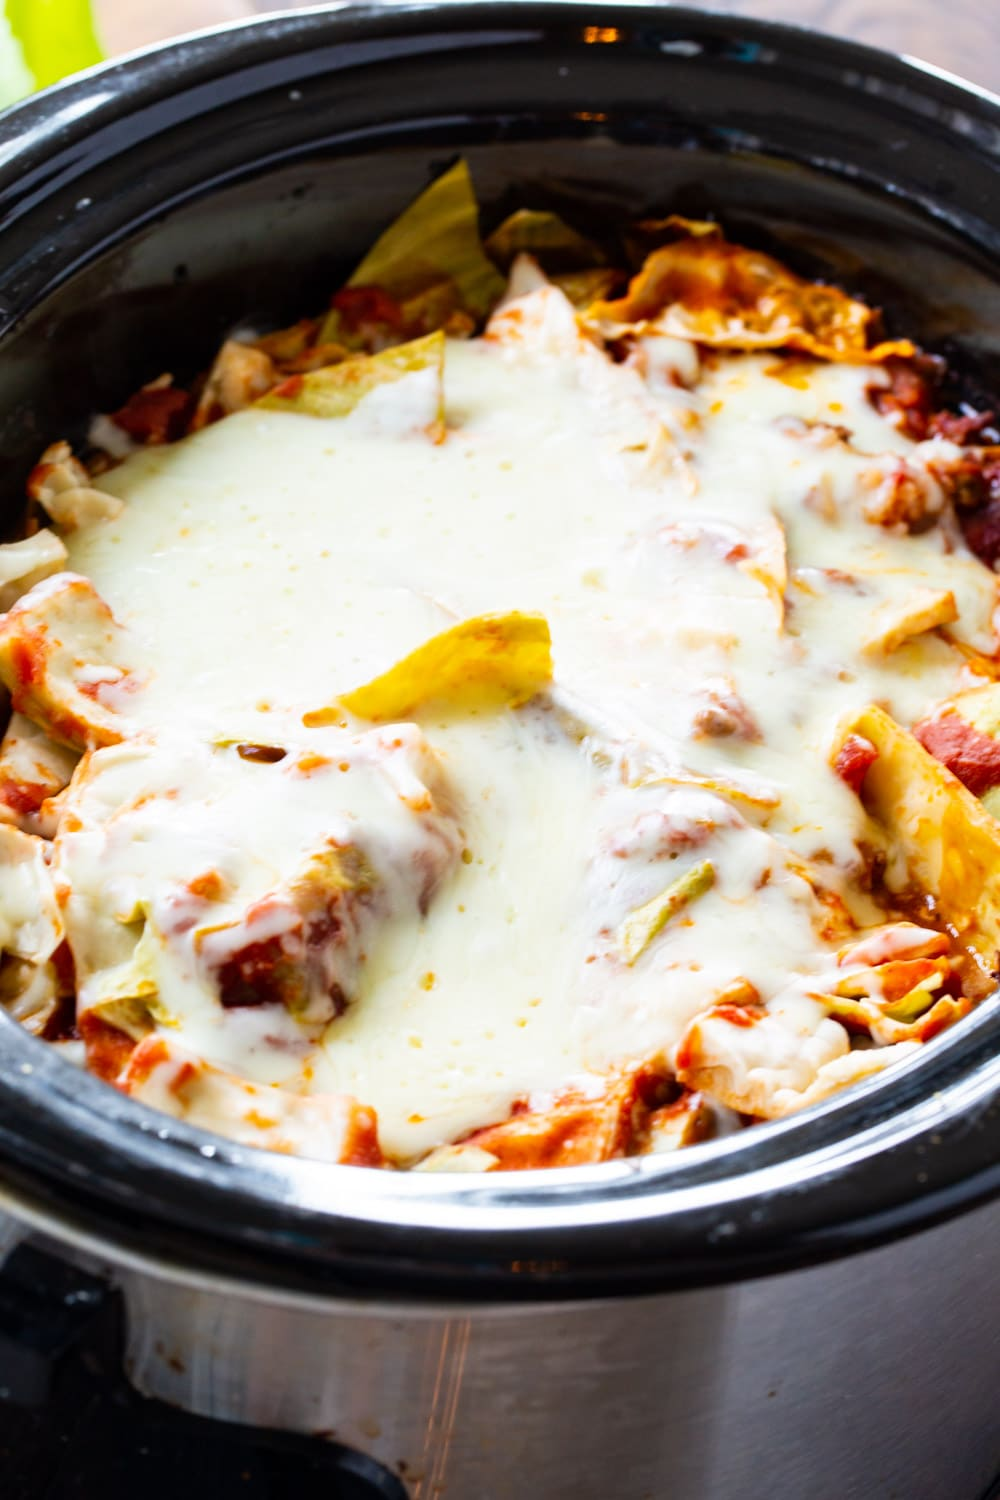 Cabbage Roll Casserole in a slow cooker.